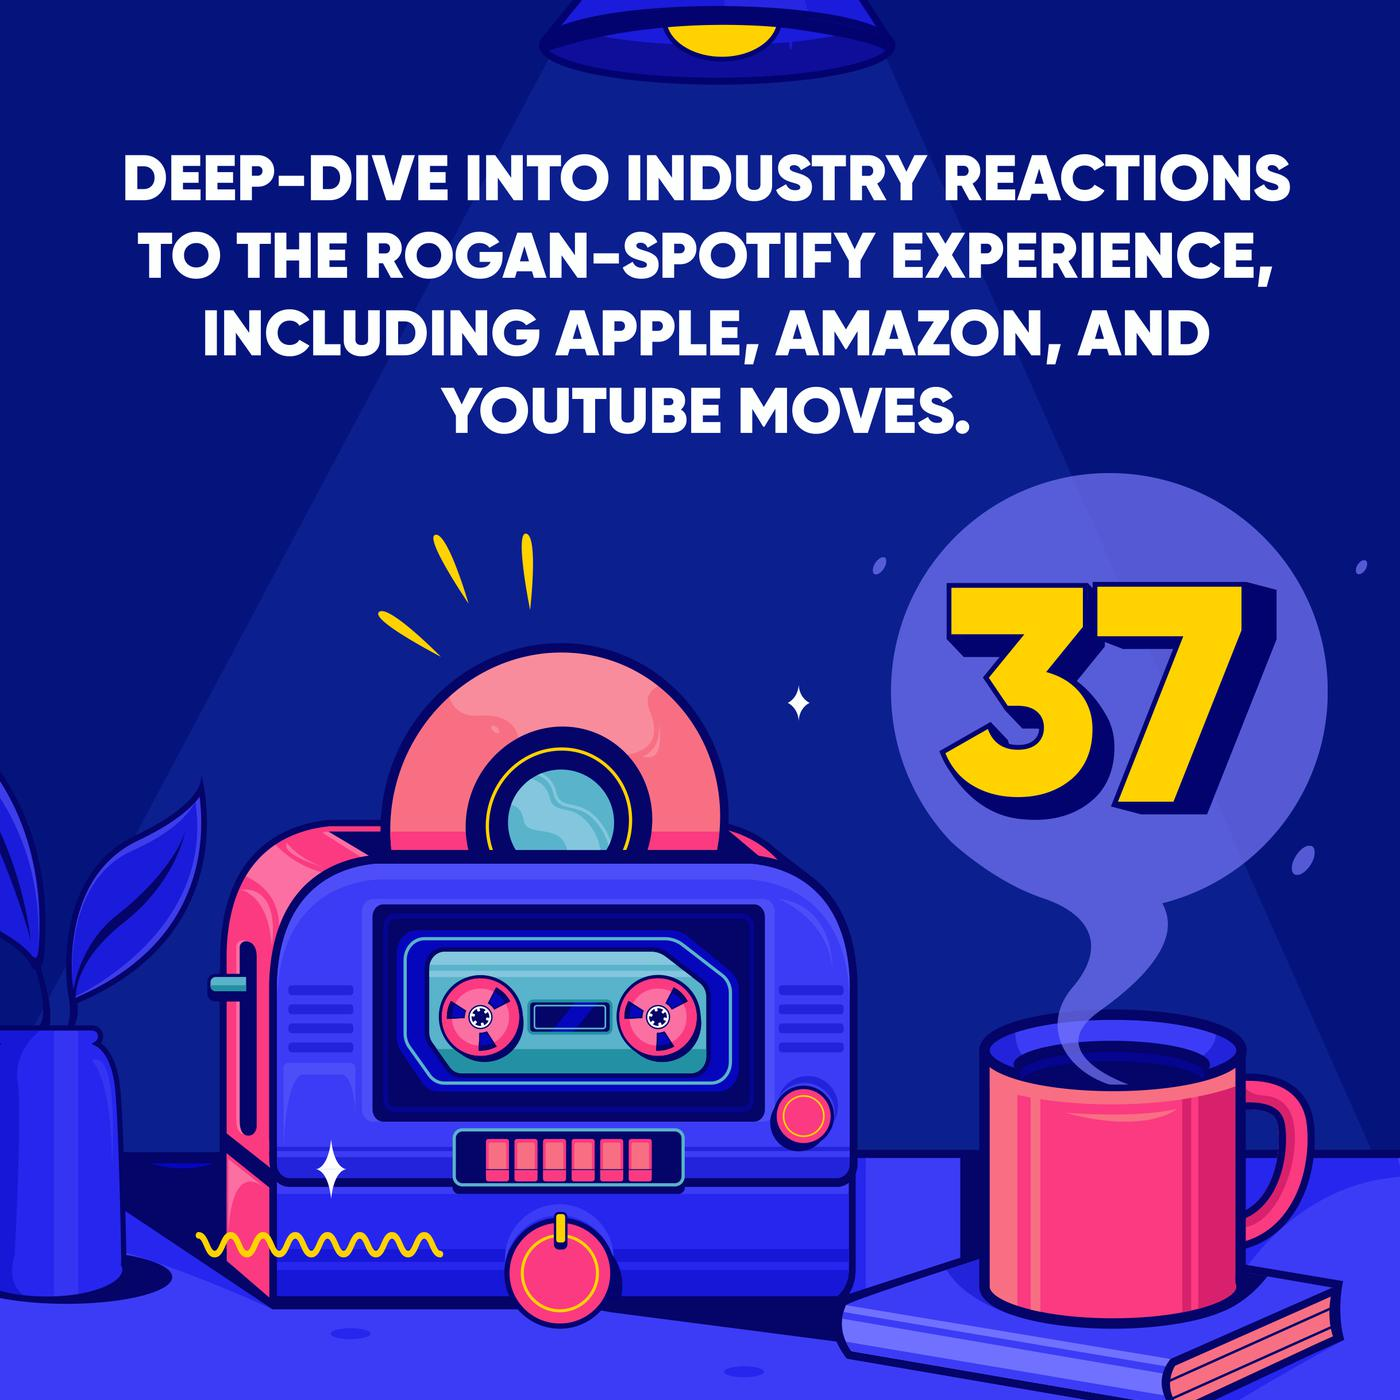 Deep dive into industry reactions to the Rogan Spotify experience, including Apple, Amazon, and YouTube moves.